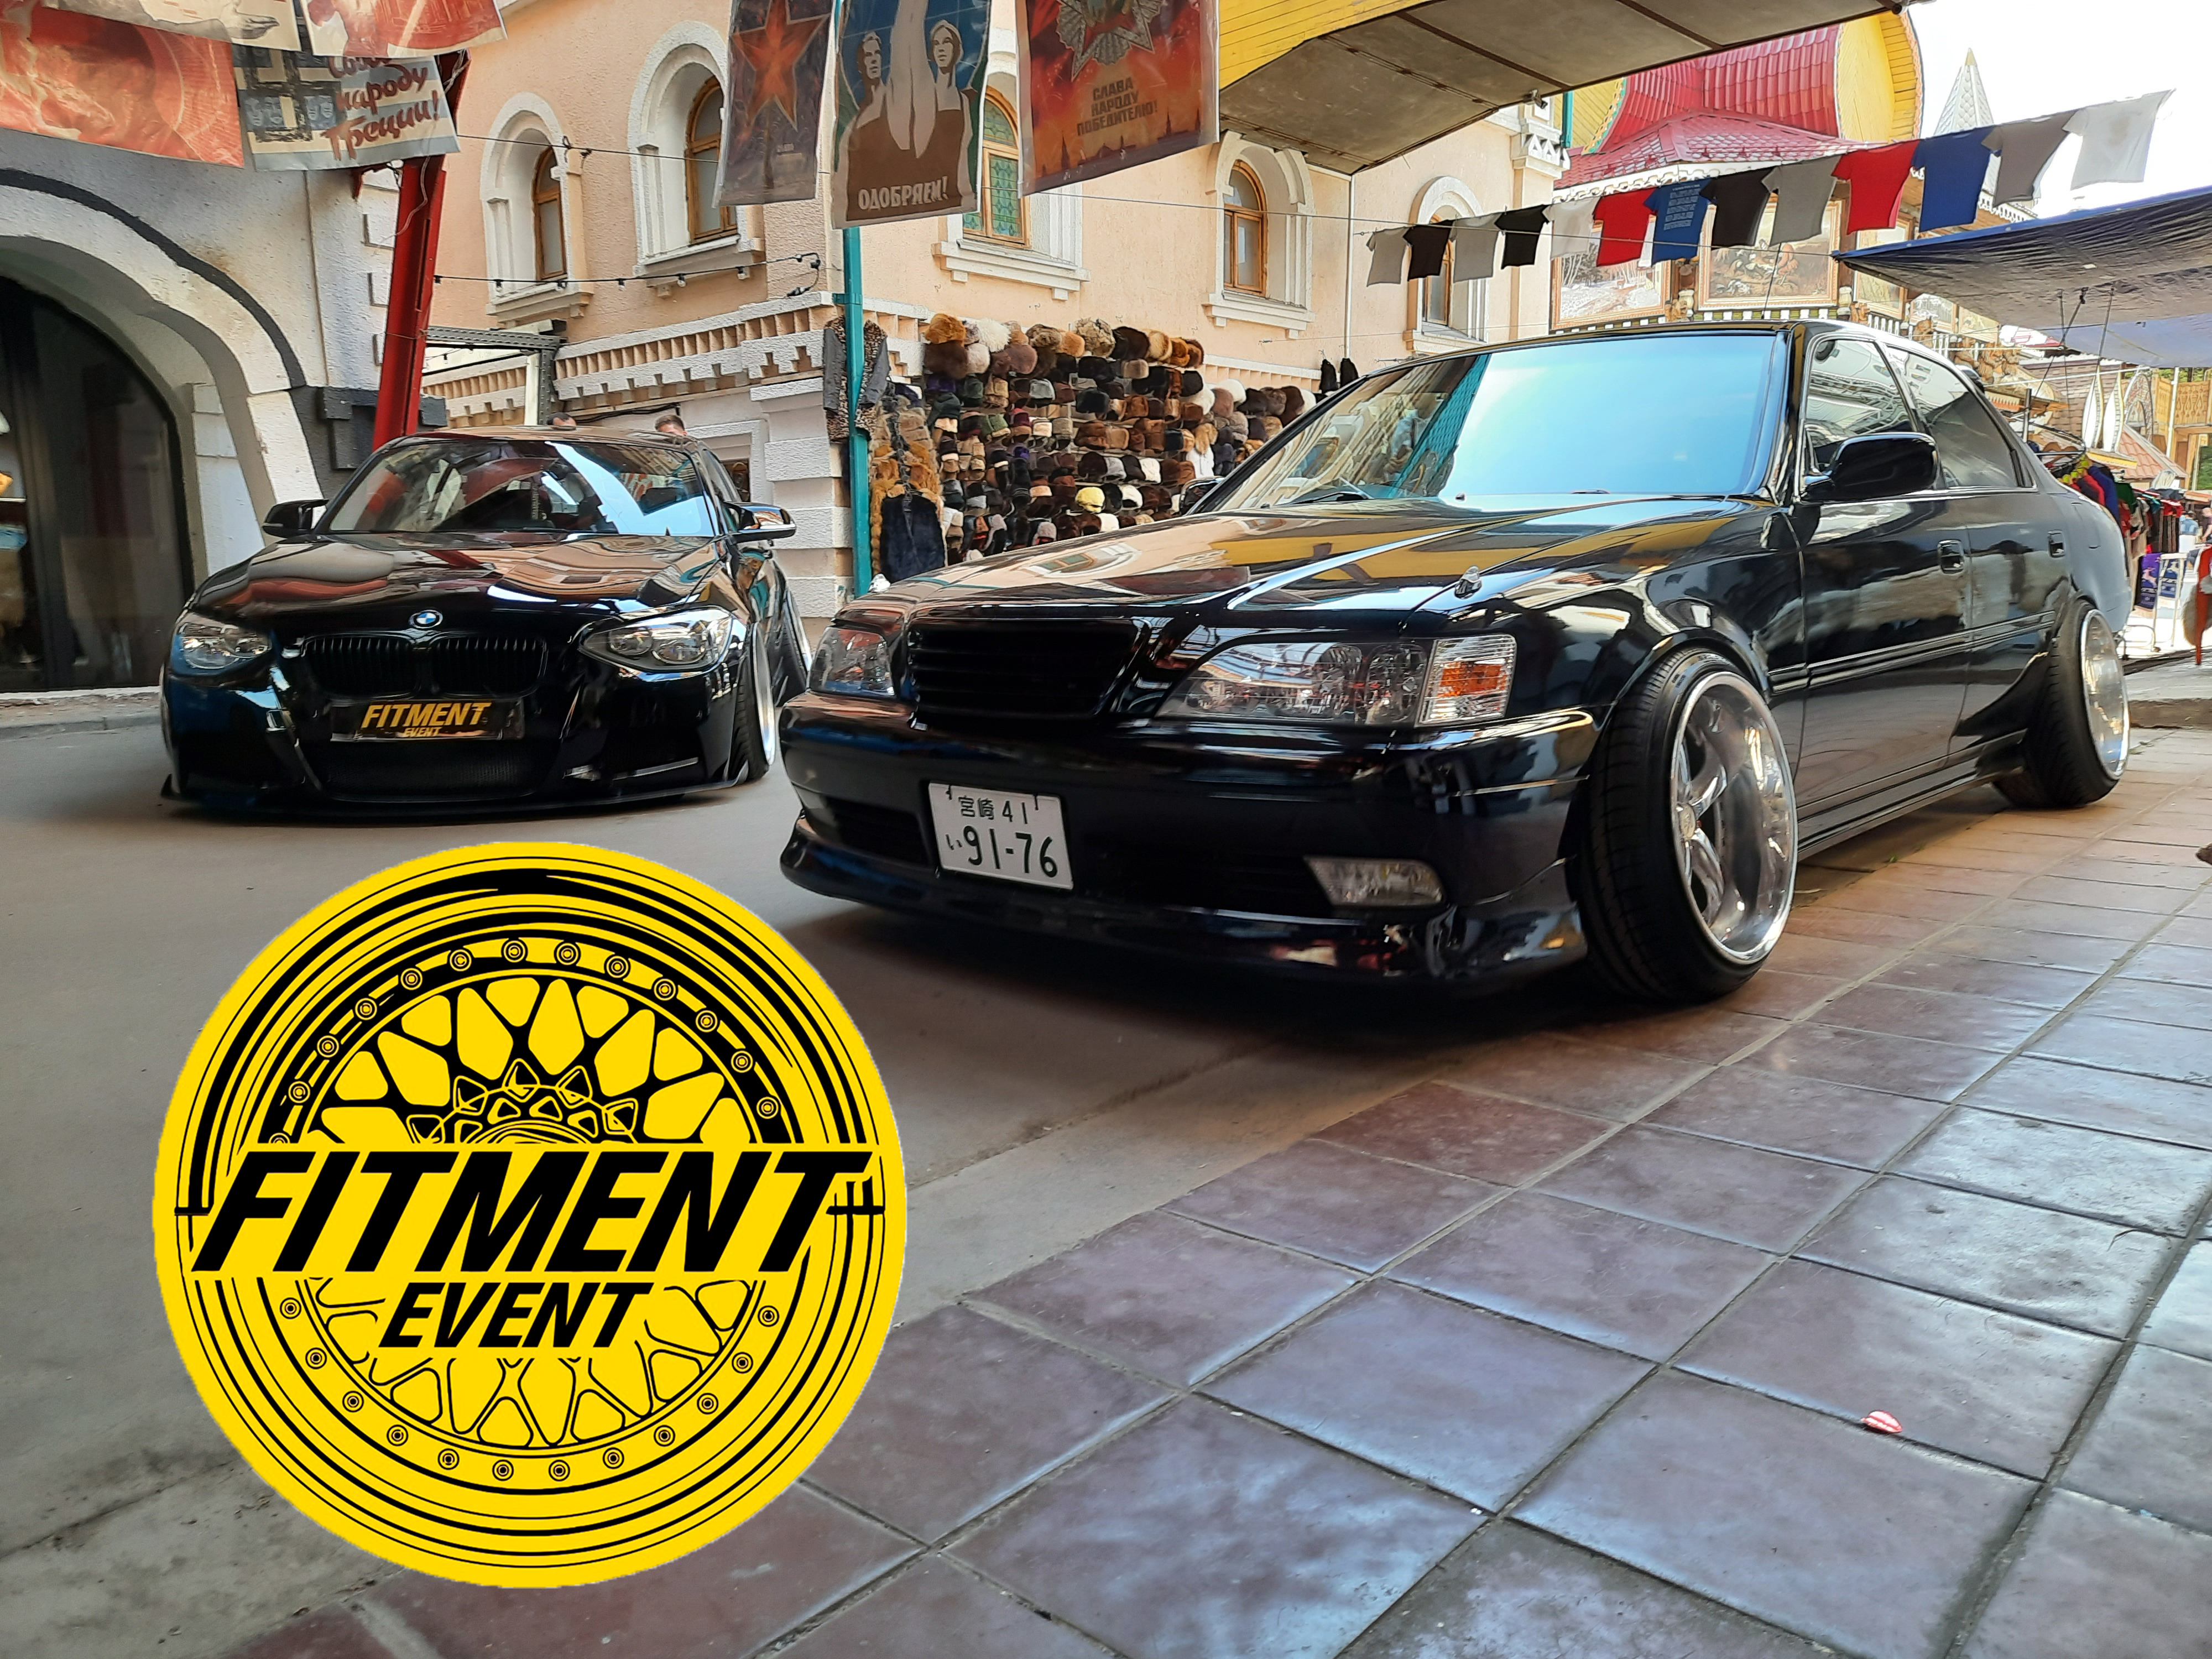 FITMENT EVENT 4